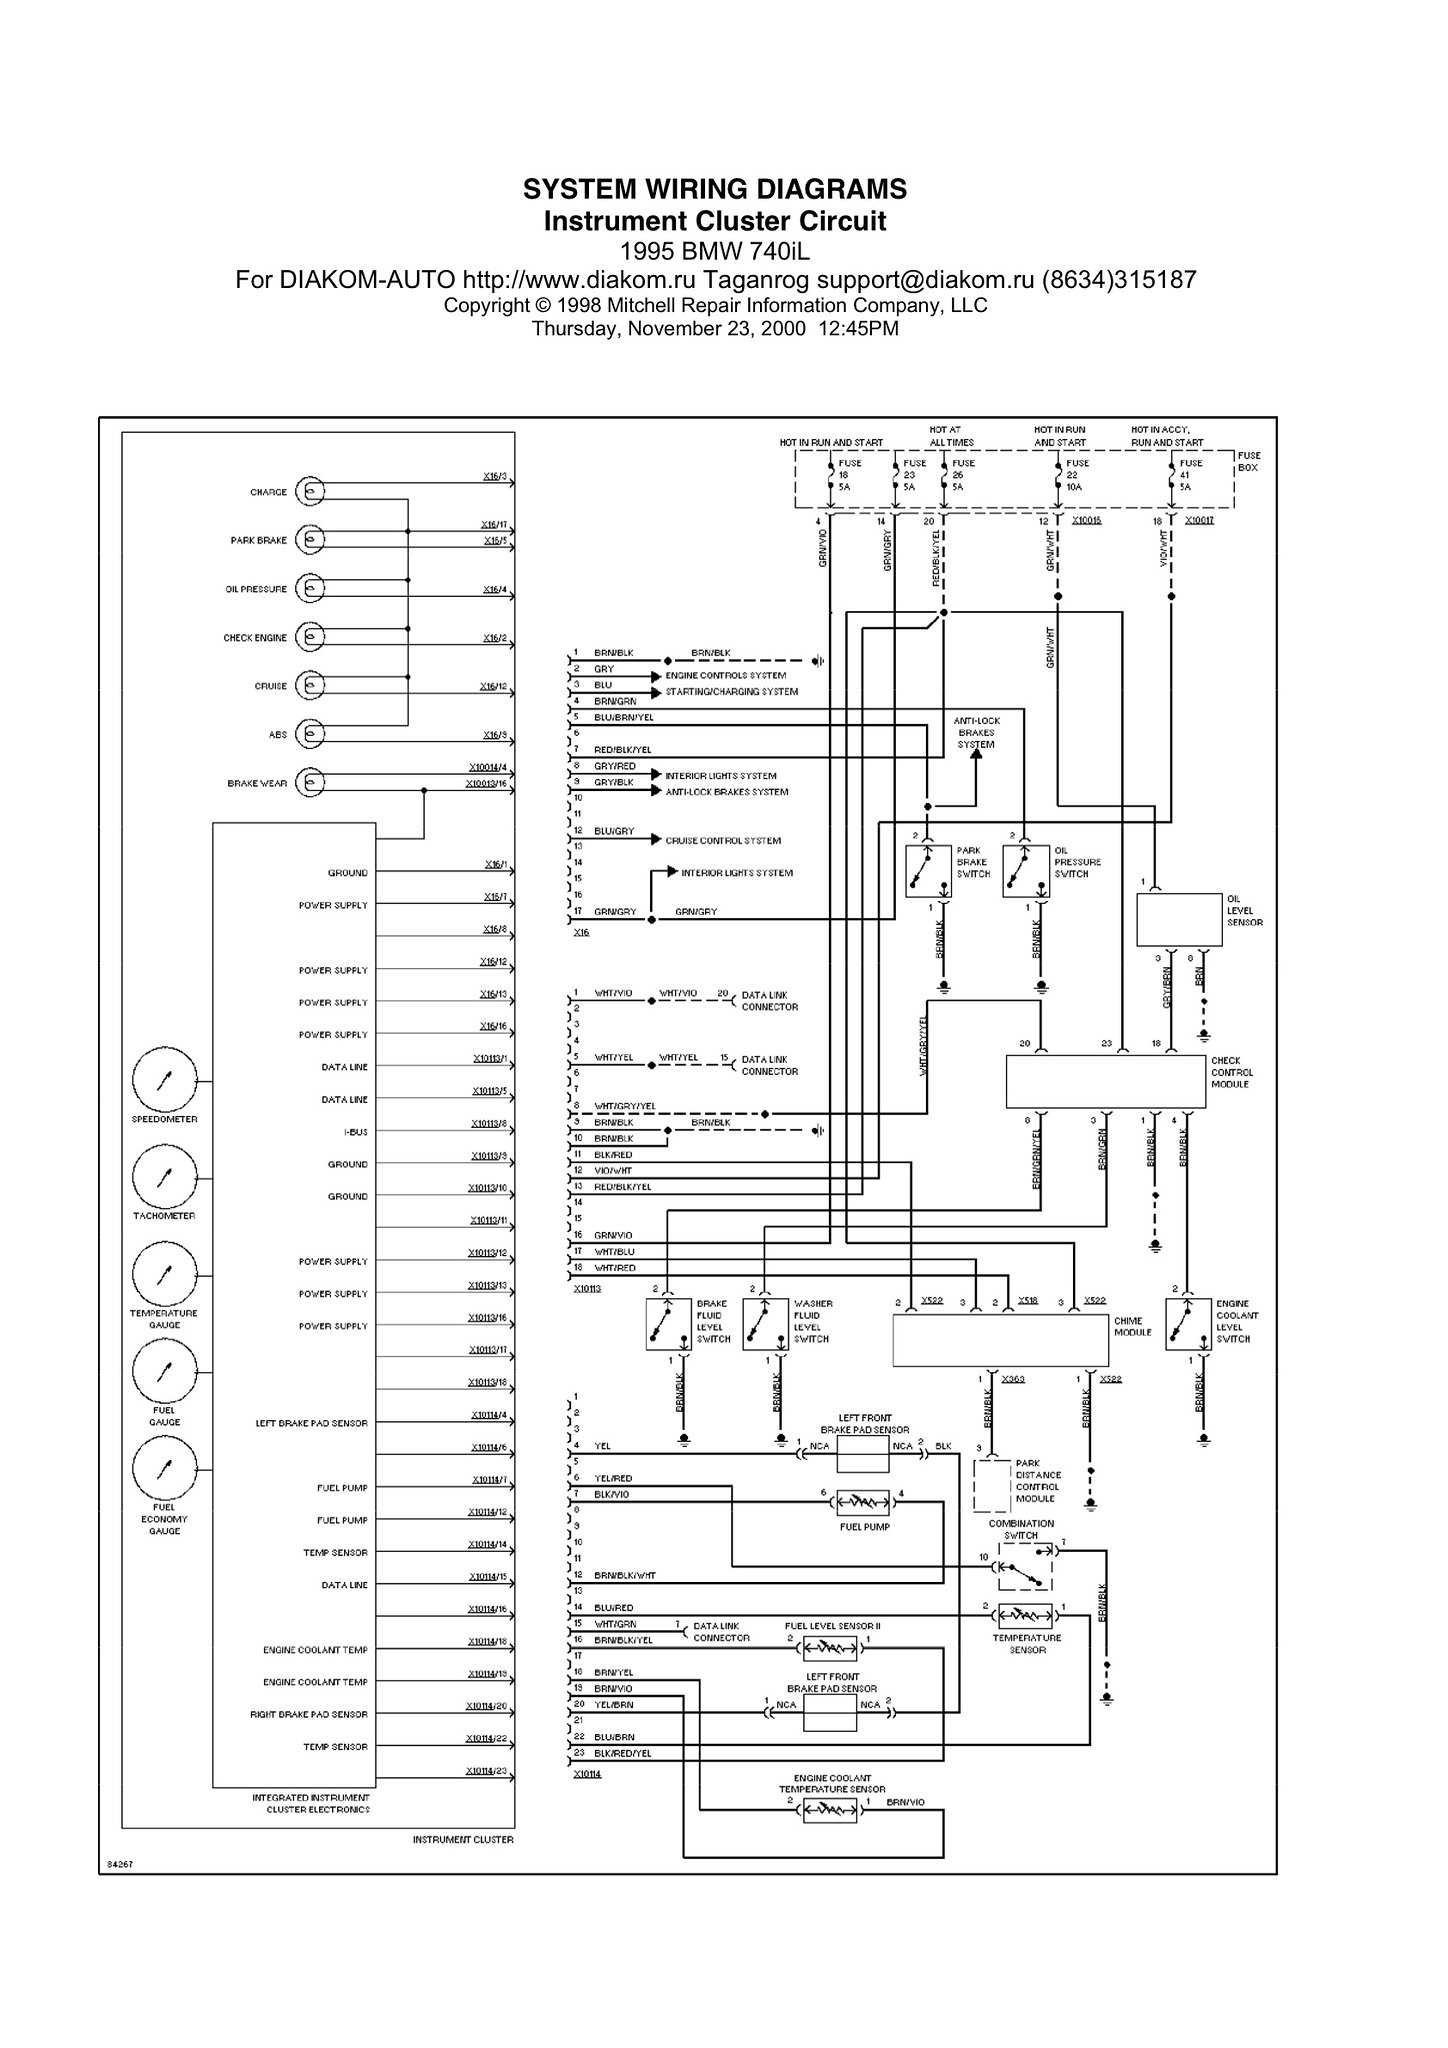 7703585142_dbc4ceb414_k bmw e39 wiring diagrams 1998 740i heated seat wiring diagram 2004 bmw 530i wiring diagrams at creativeand.co